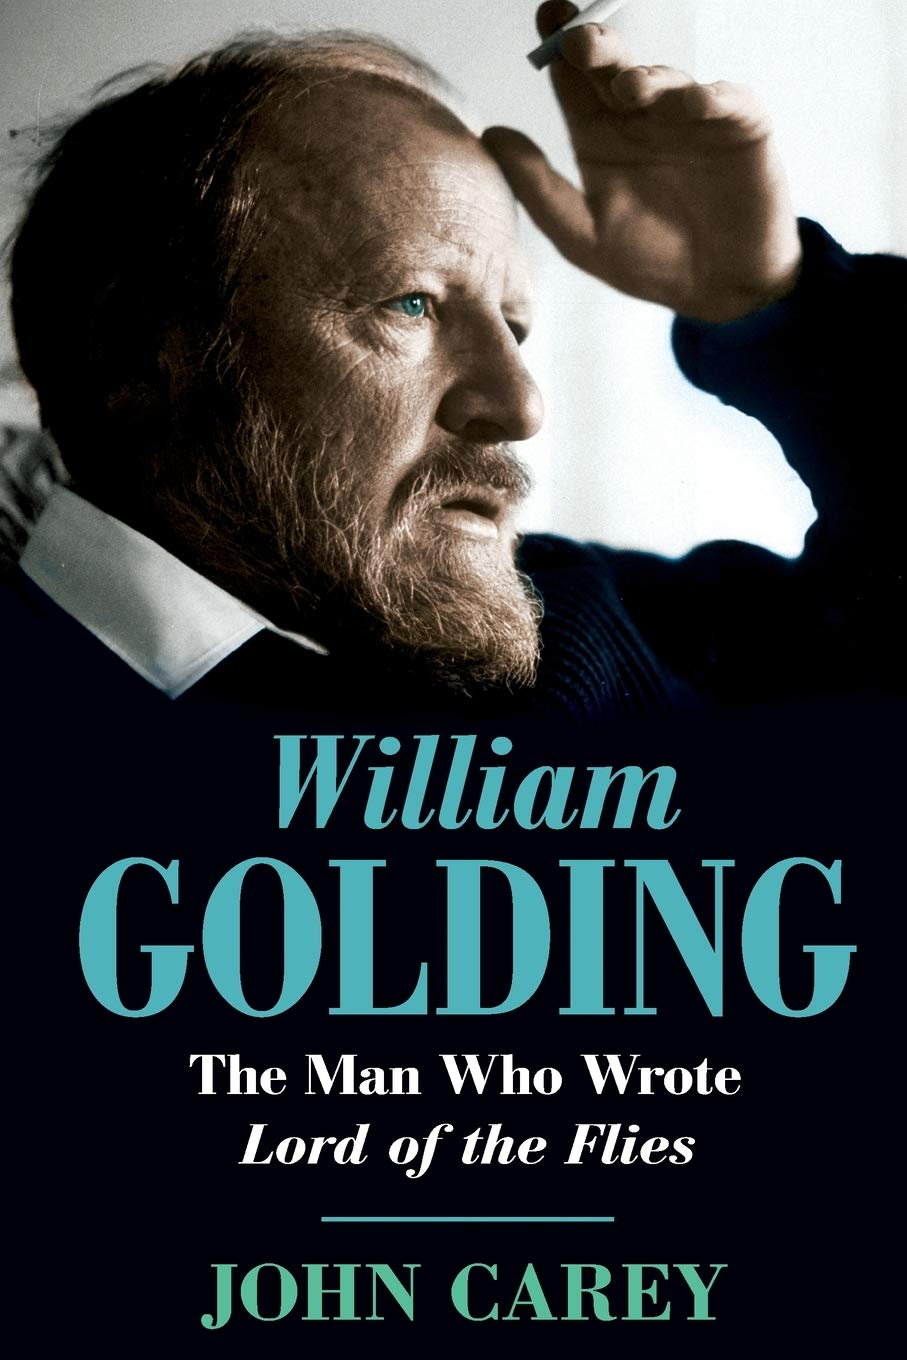 Give a woman golding whatever william you Now here's